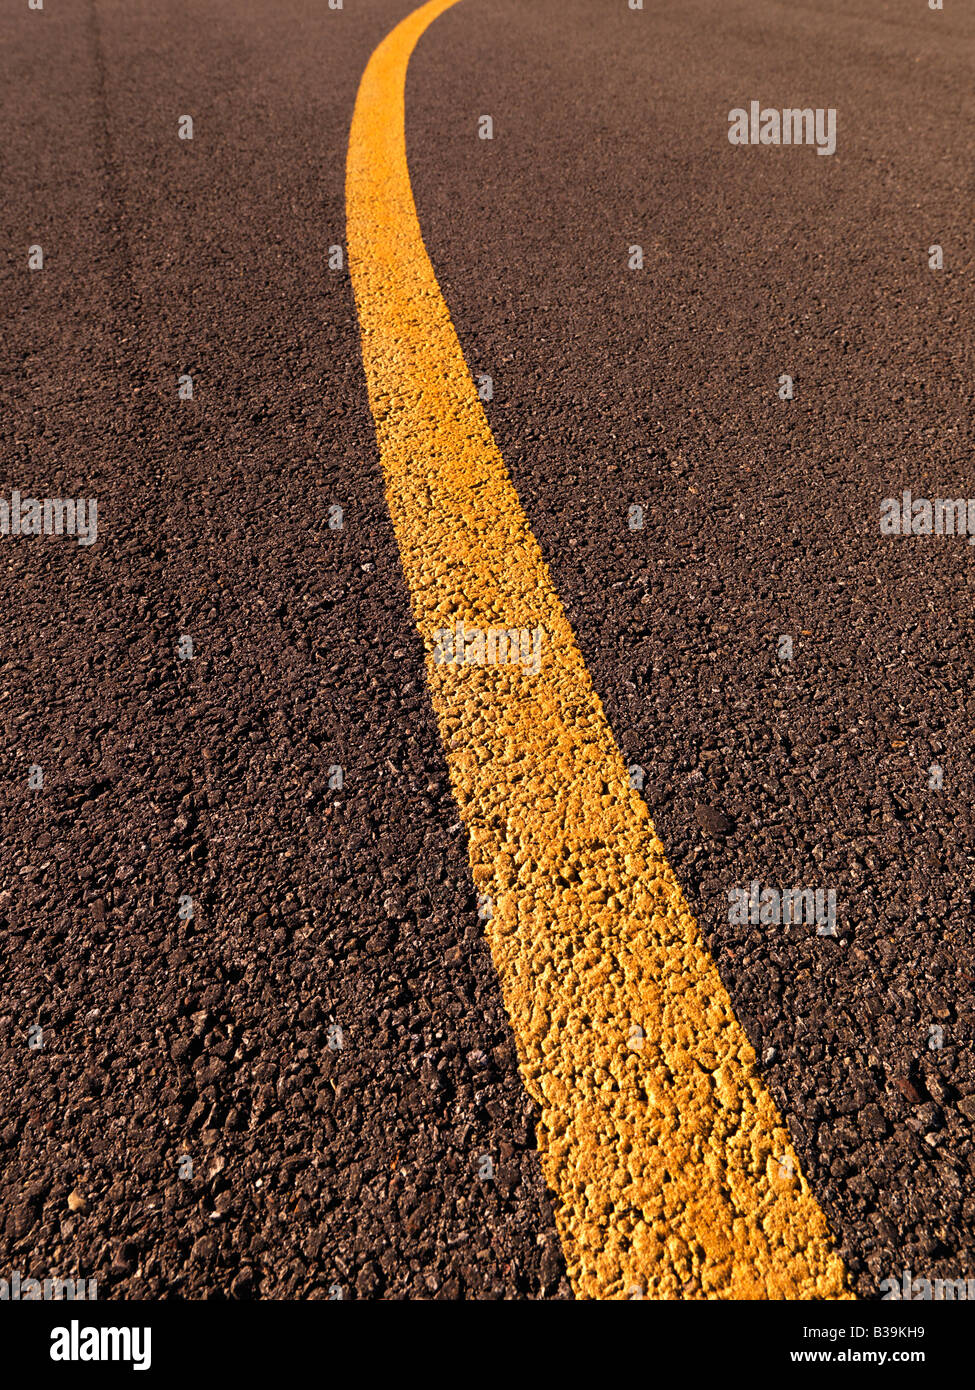 Clsoe up of yellow line on asphalt - Stock Image